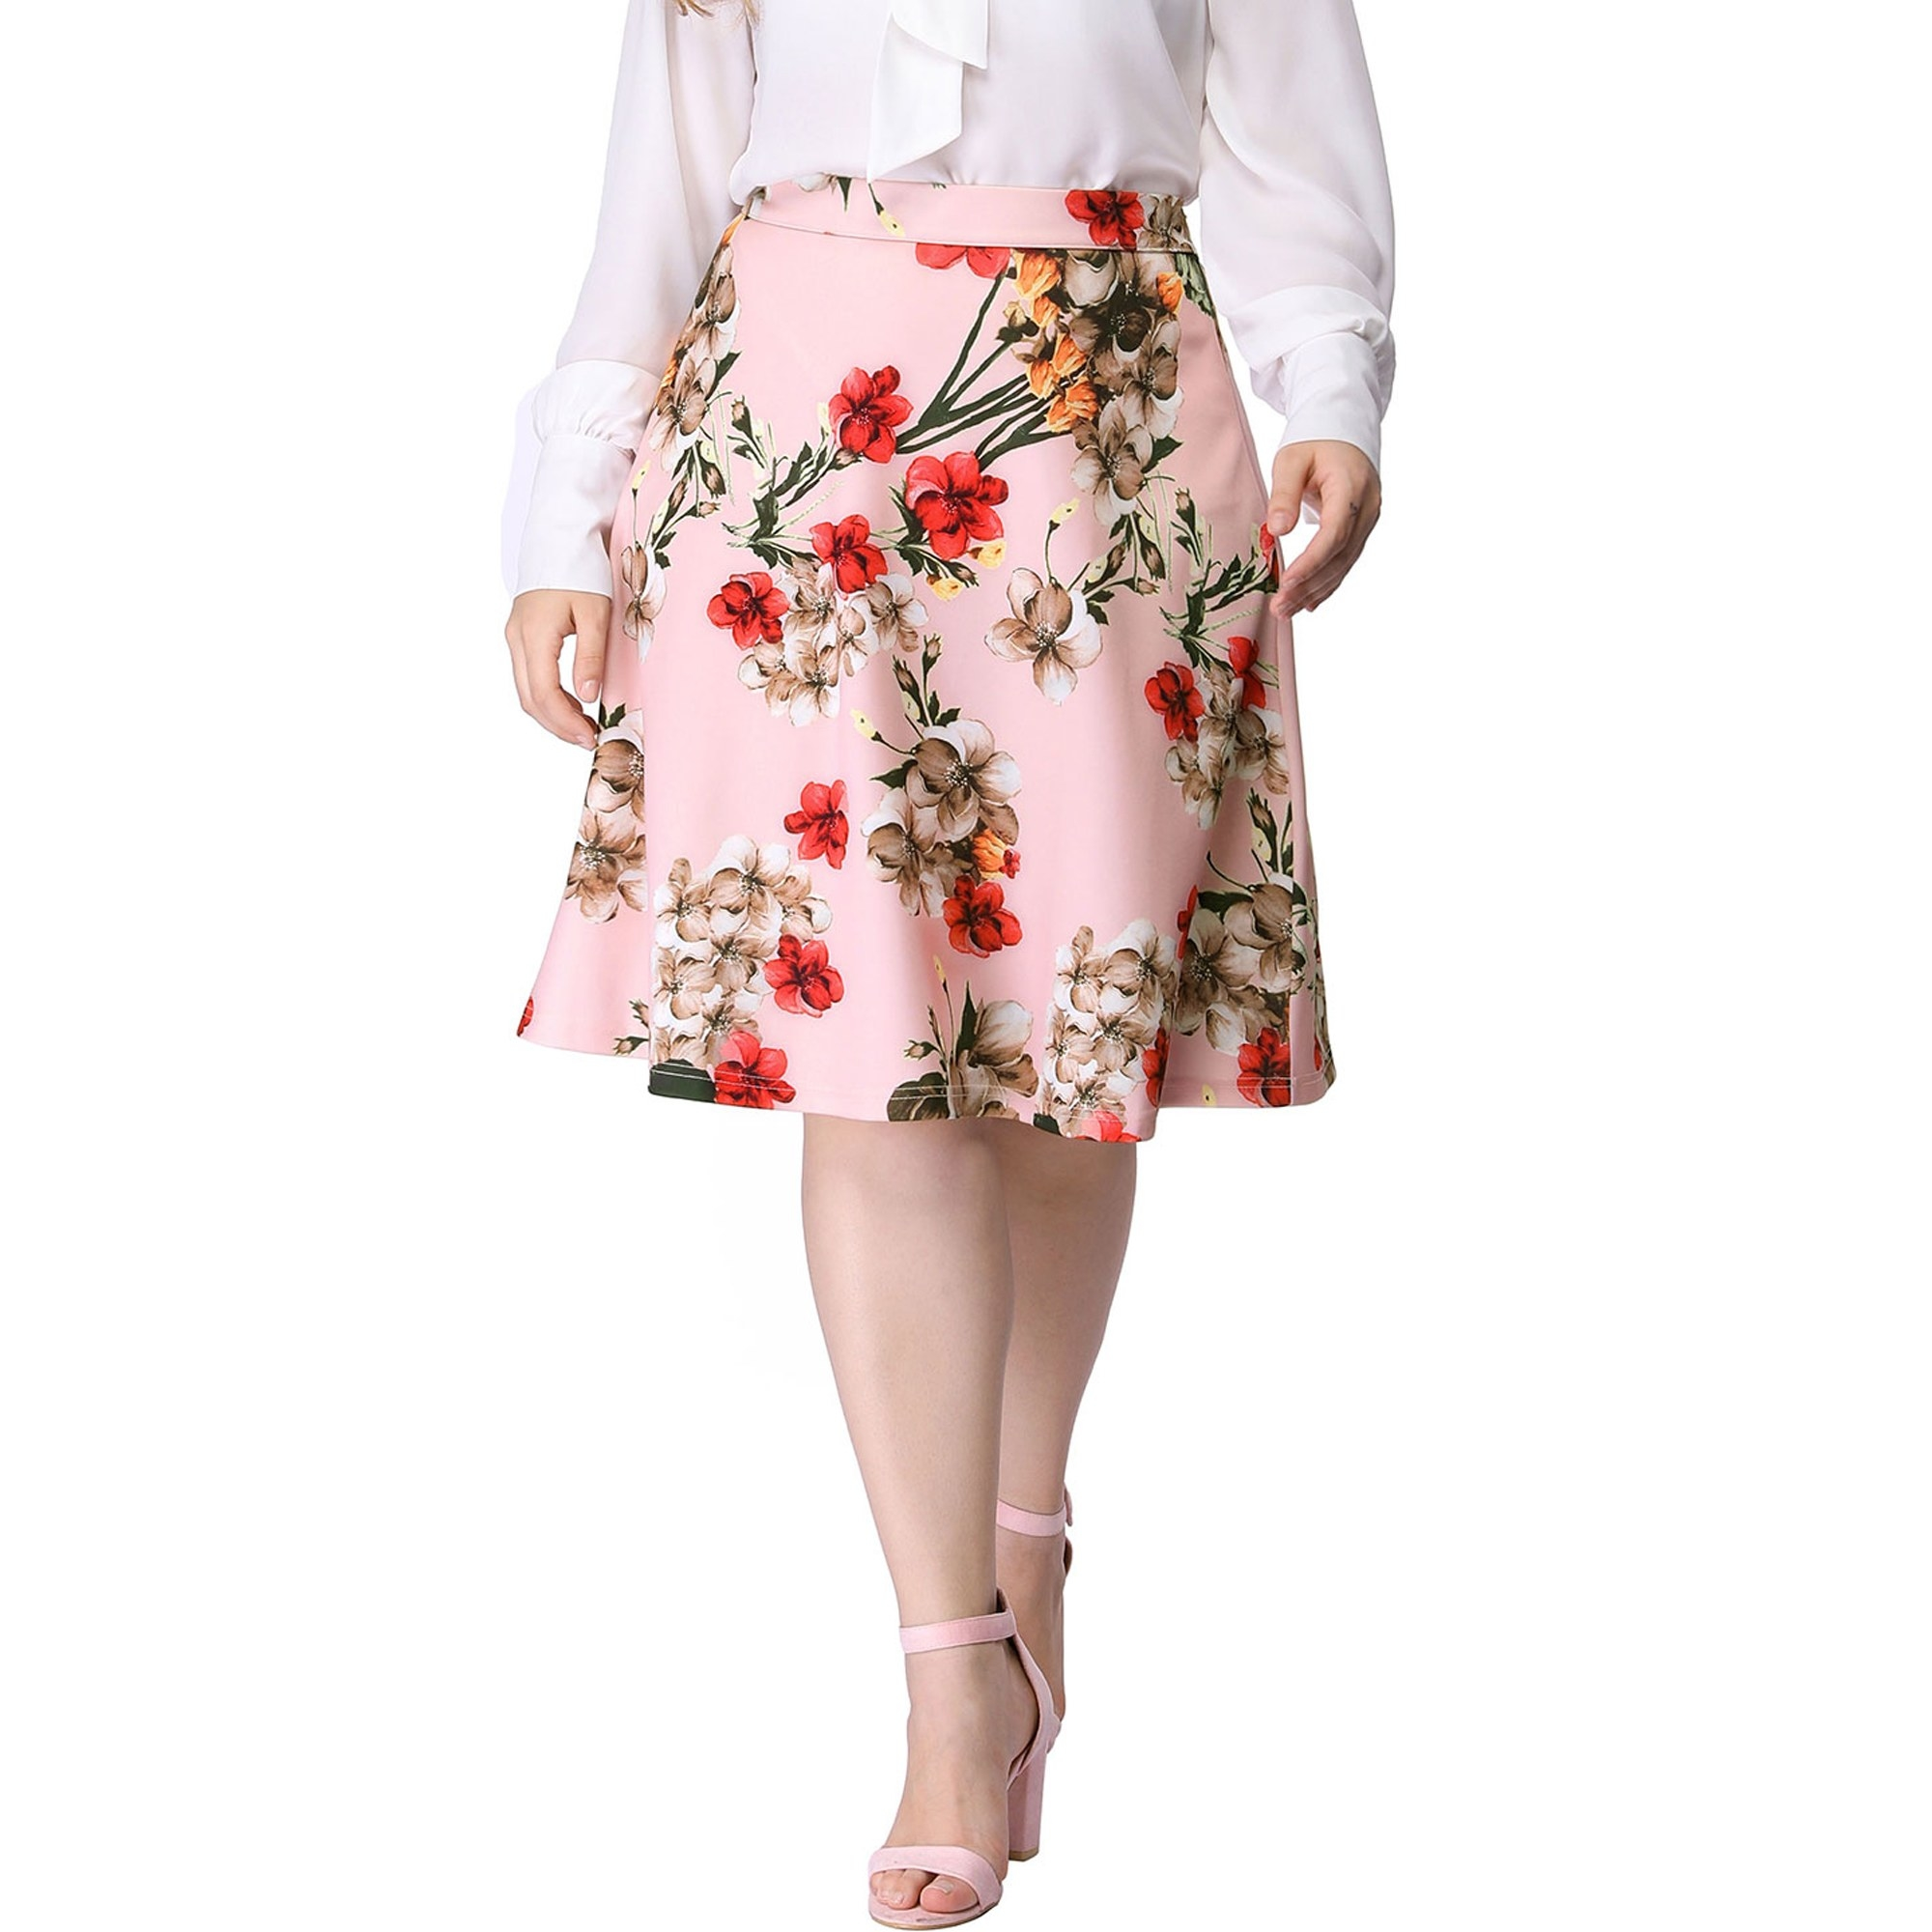 The pink floral midi skirt